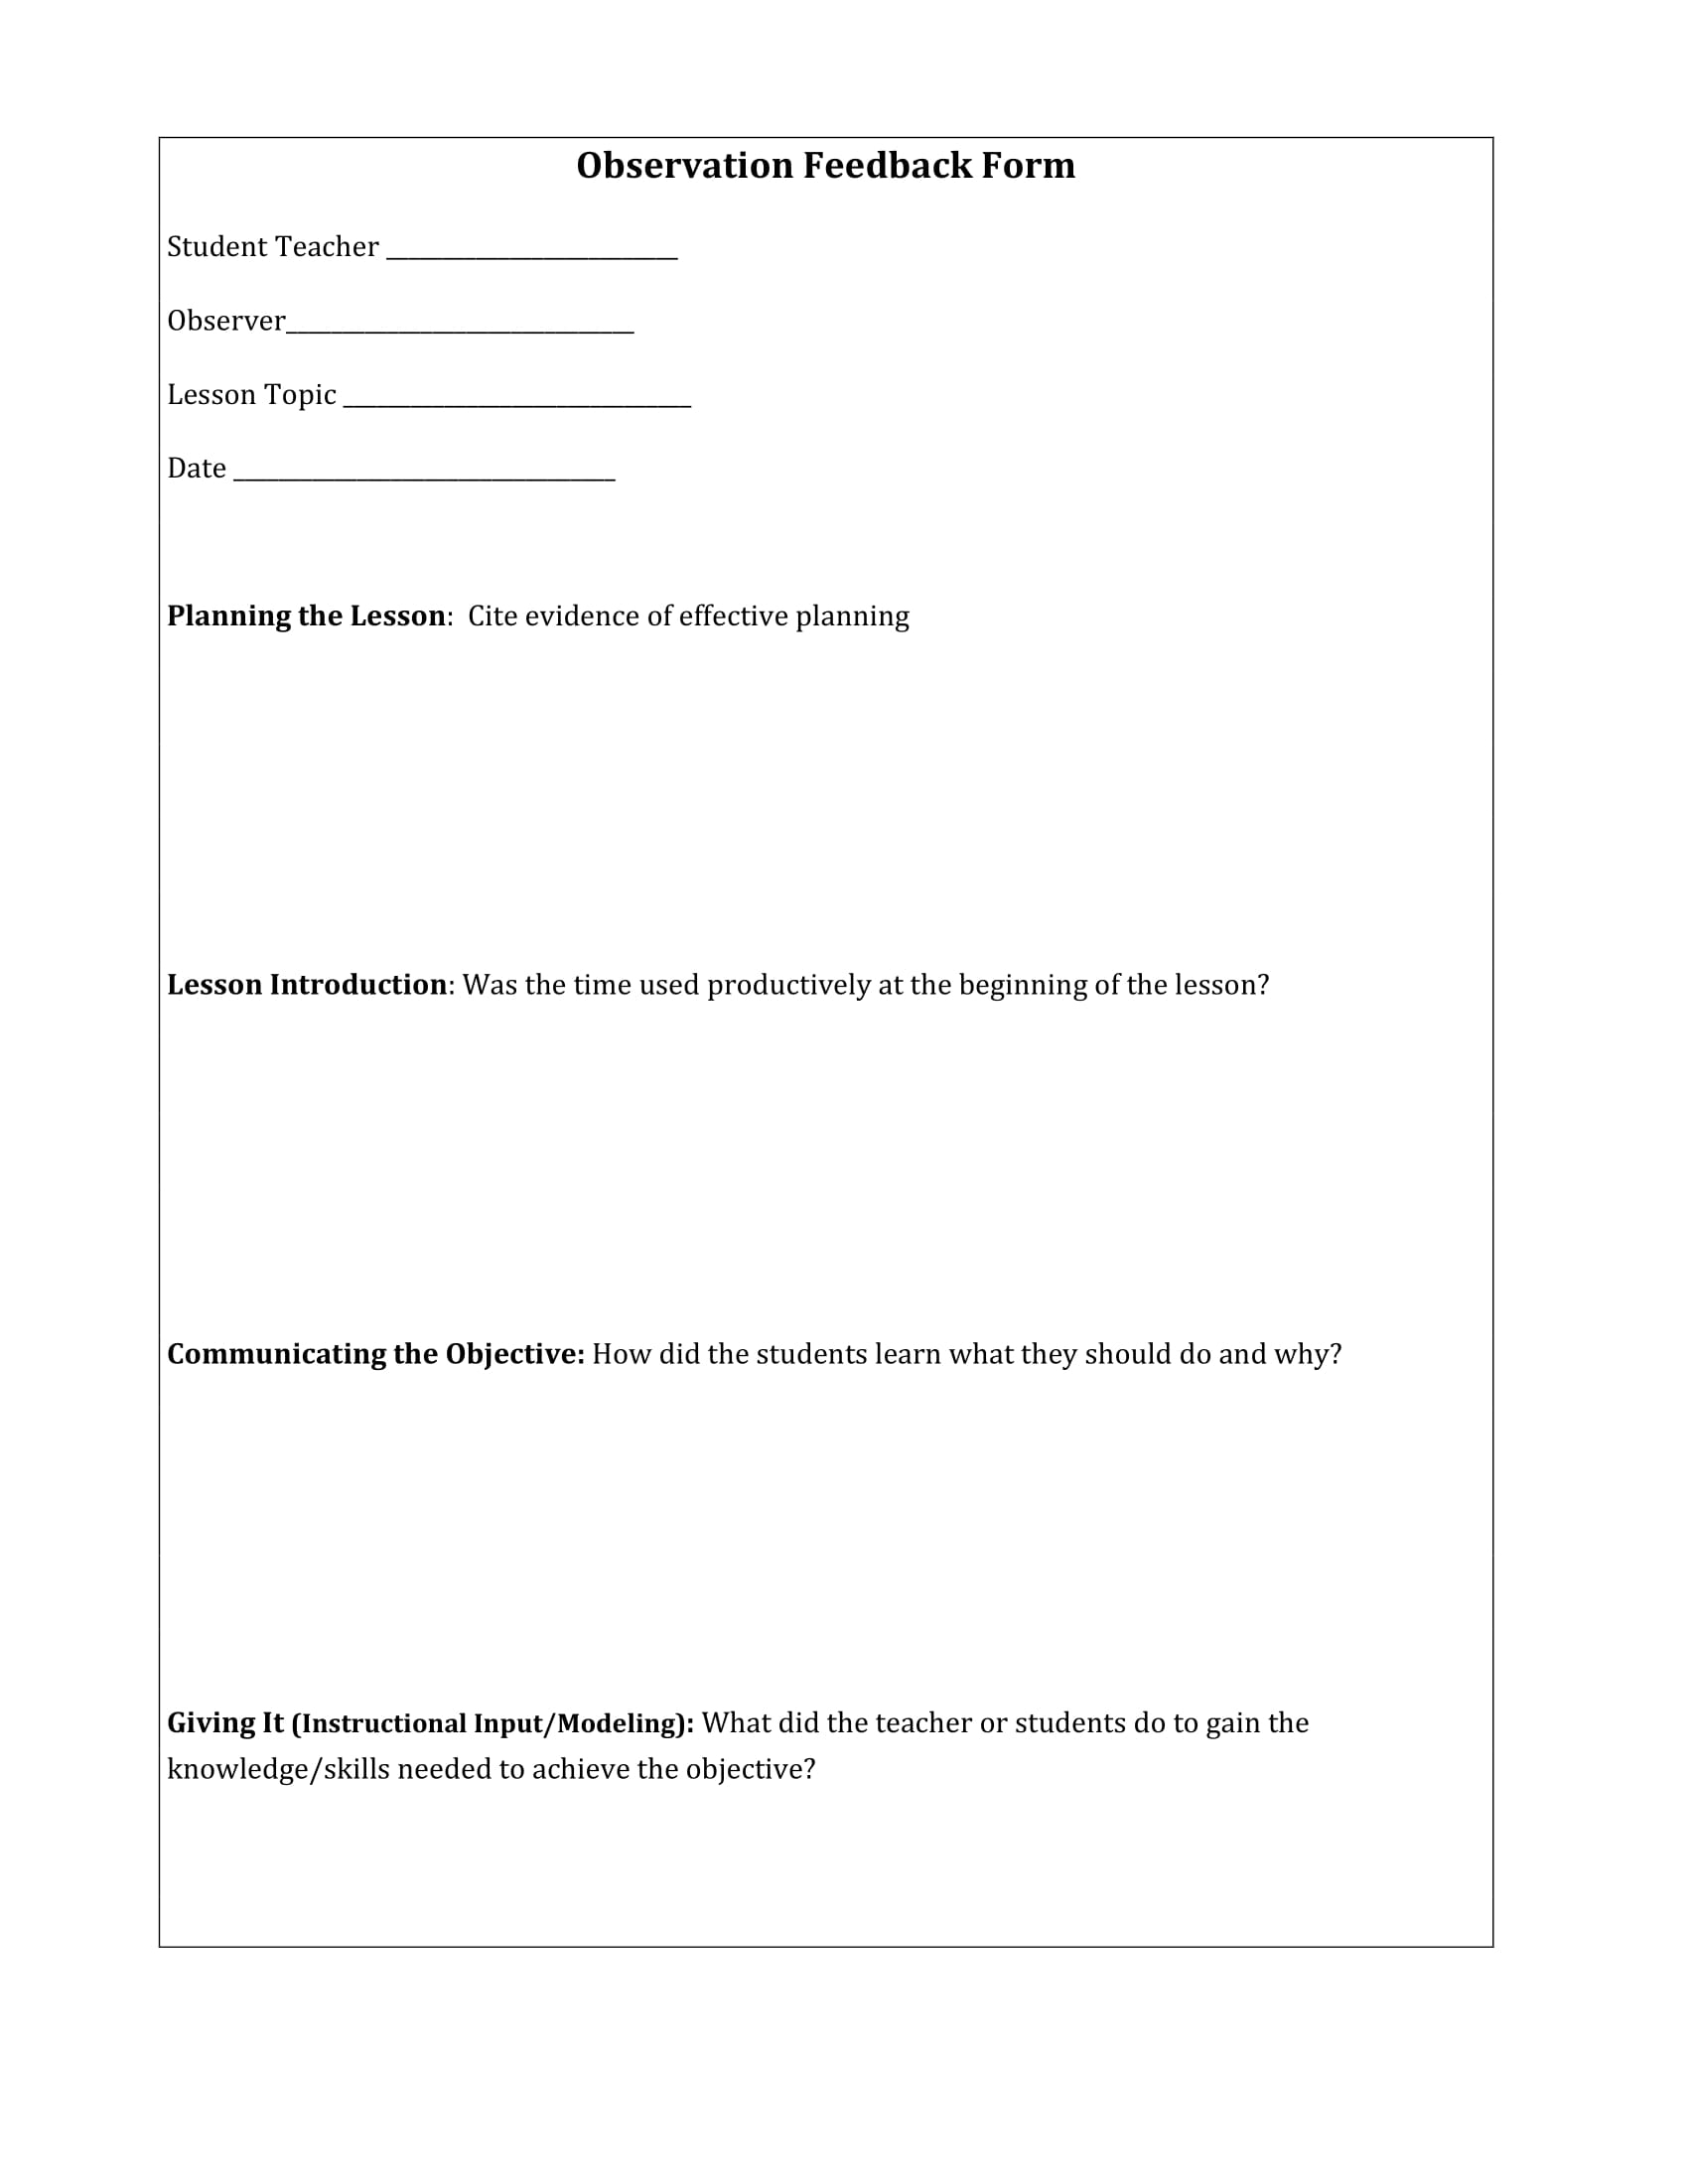 Student Teacher Observation Feedback Form